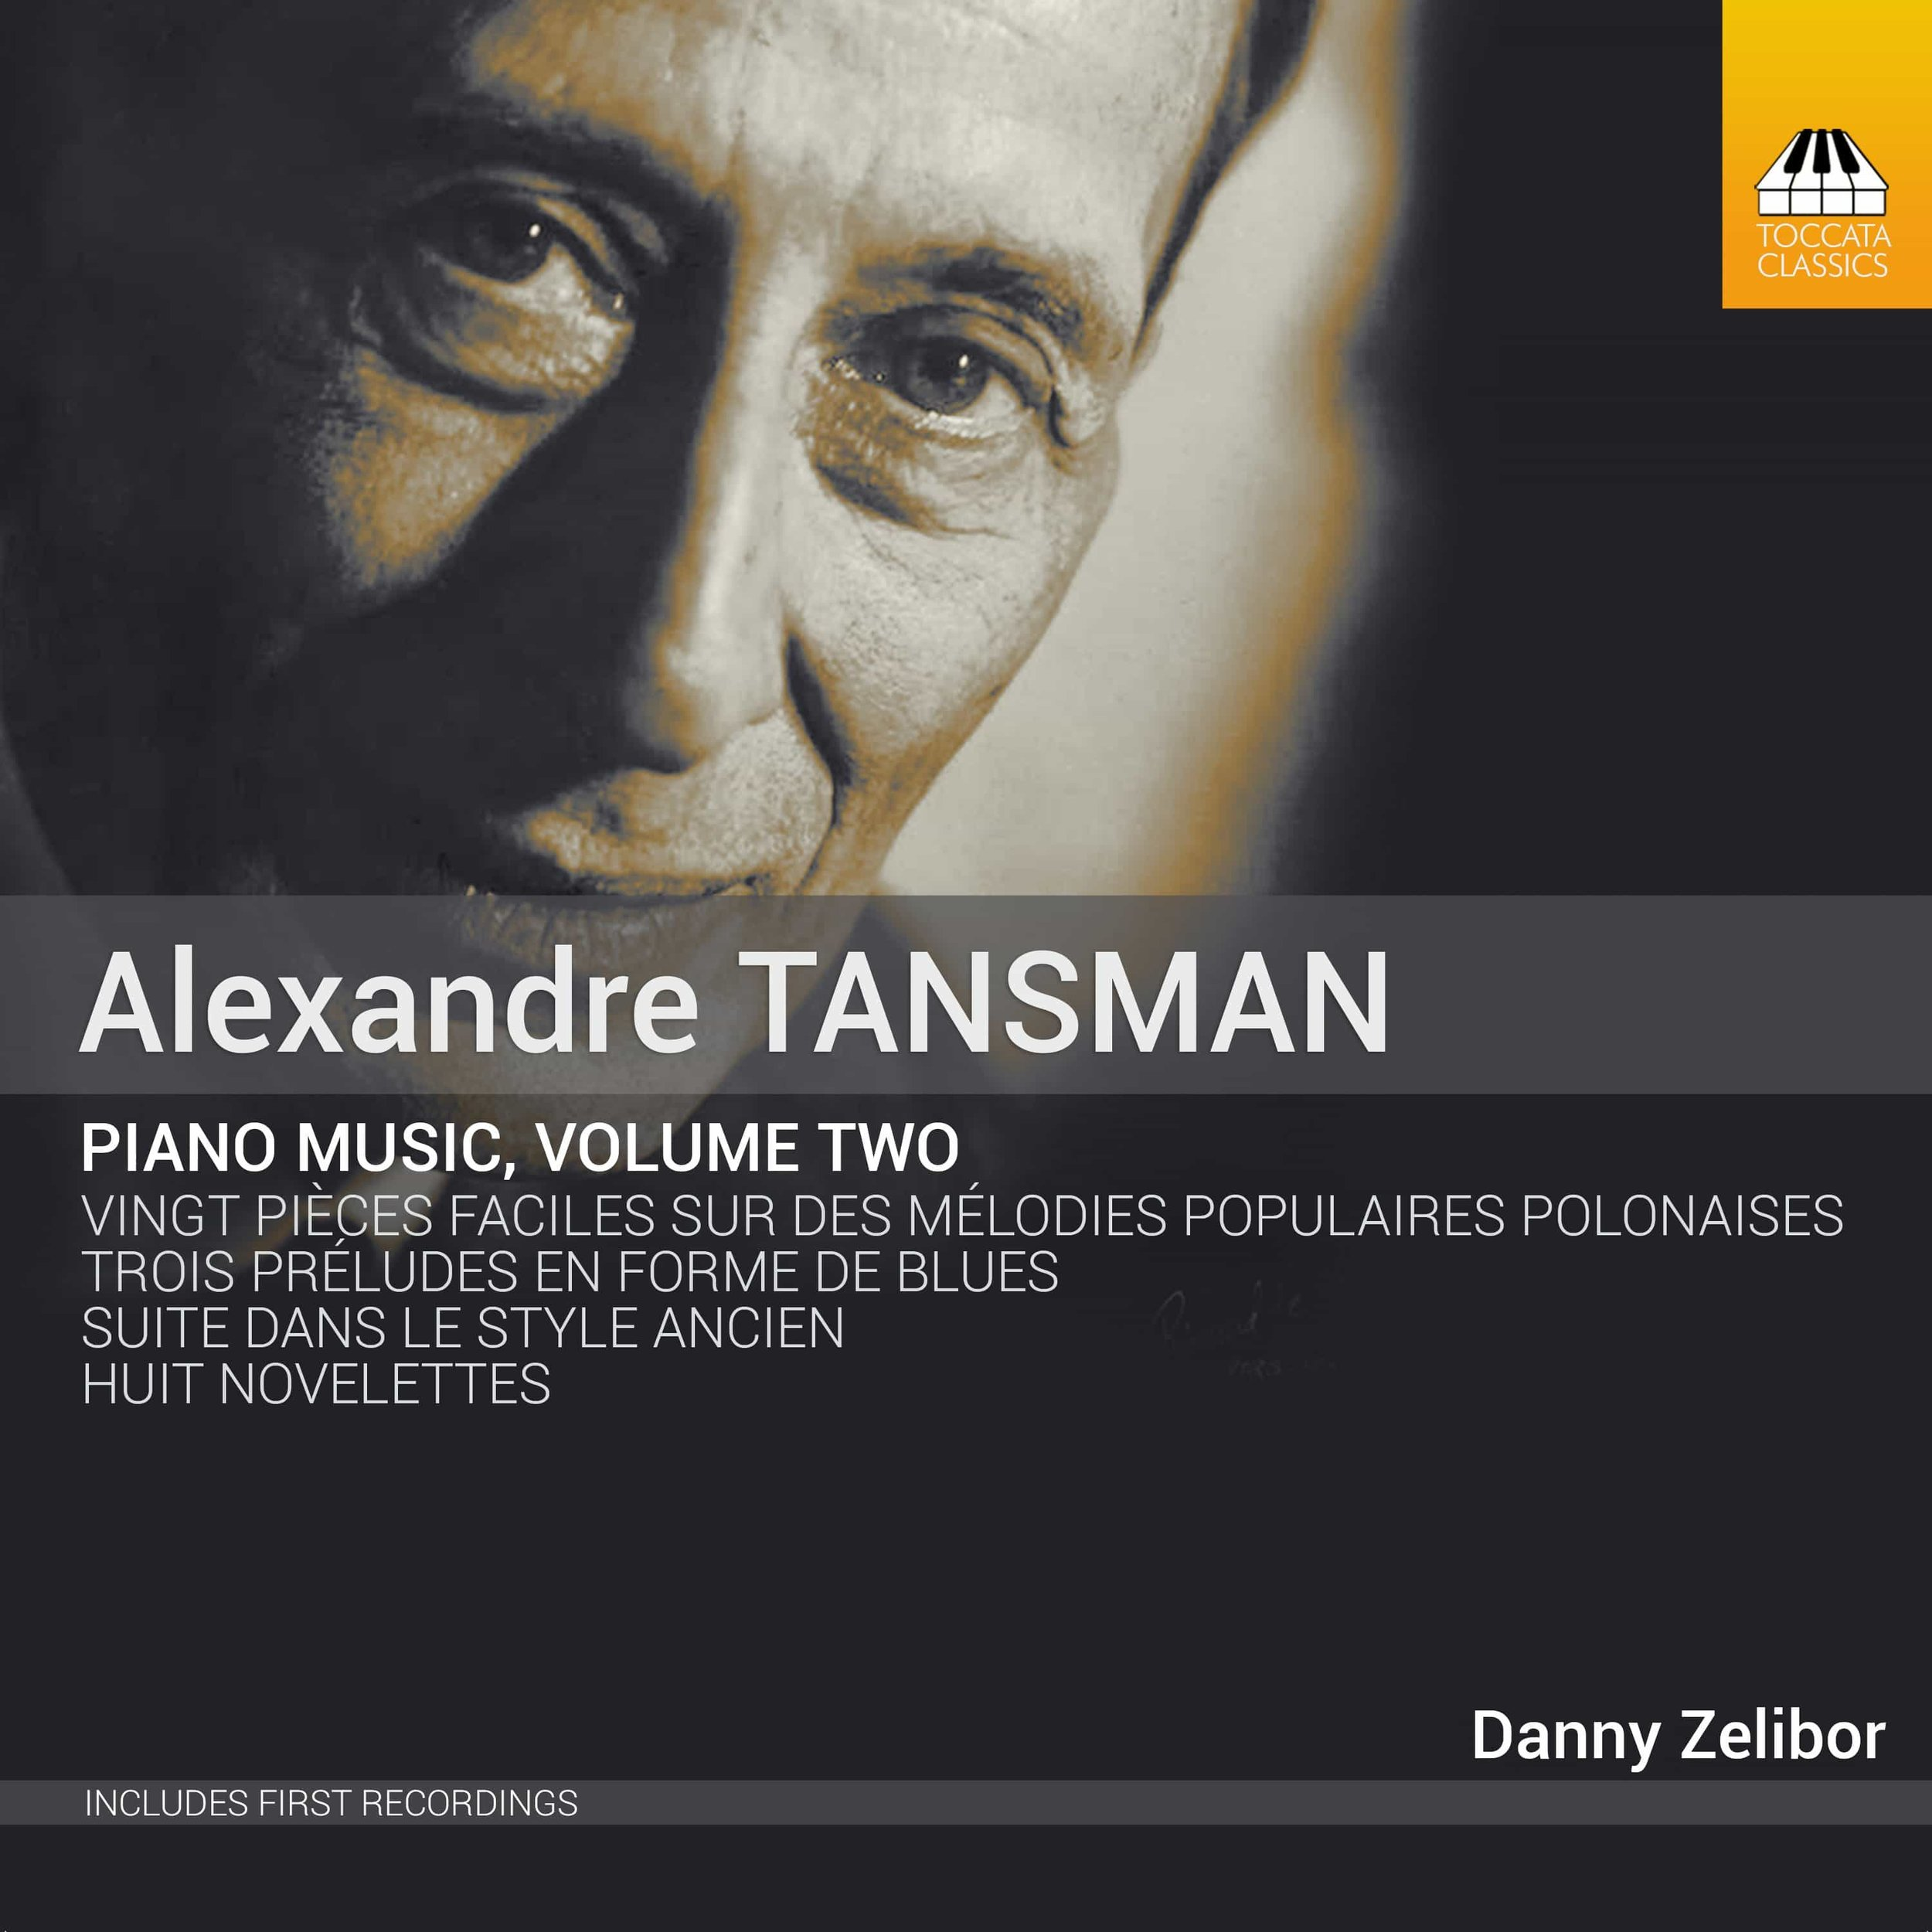 ALEXANDRE TANSMAN: PIANO MUSIC, VOLUME TWO ON TOCCATA CLASSICS - The second in a multi-volume survey of Tansman's piano music, this album contains world premiere recordings and illustrates his mastery of a wide variety of musical genres. From Neo-Baroque to blues and French style to Polish folk music, Tansman's personality is on full display here.Purchase: Toccata Classics | Apple Music | Amazon